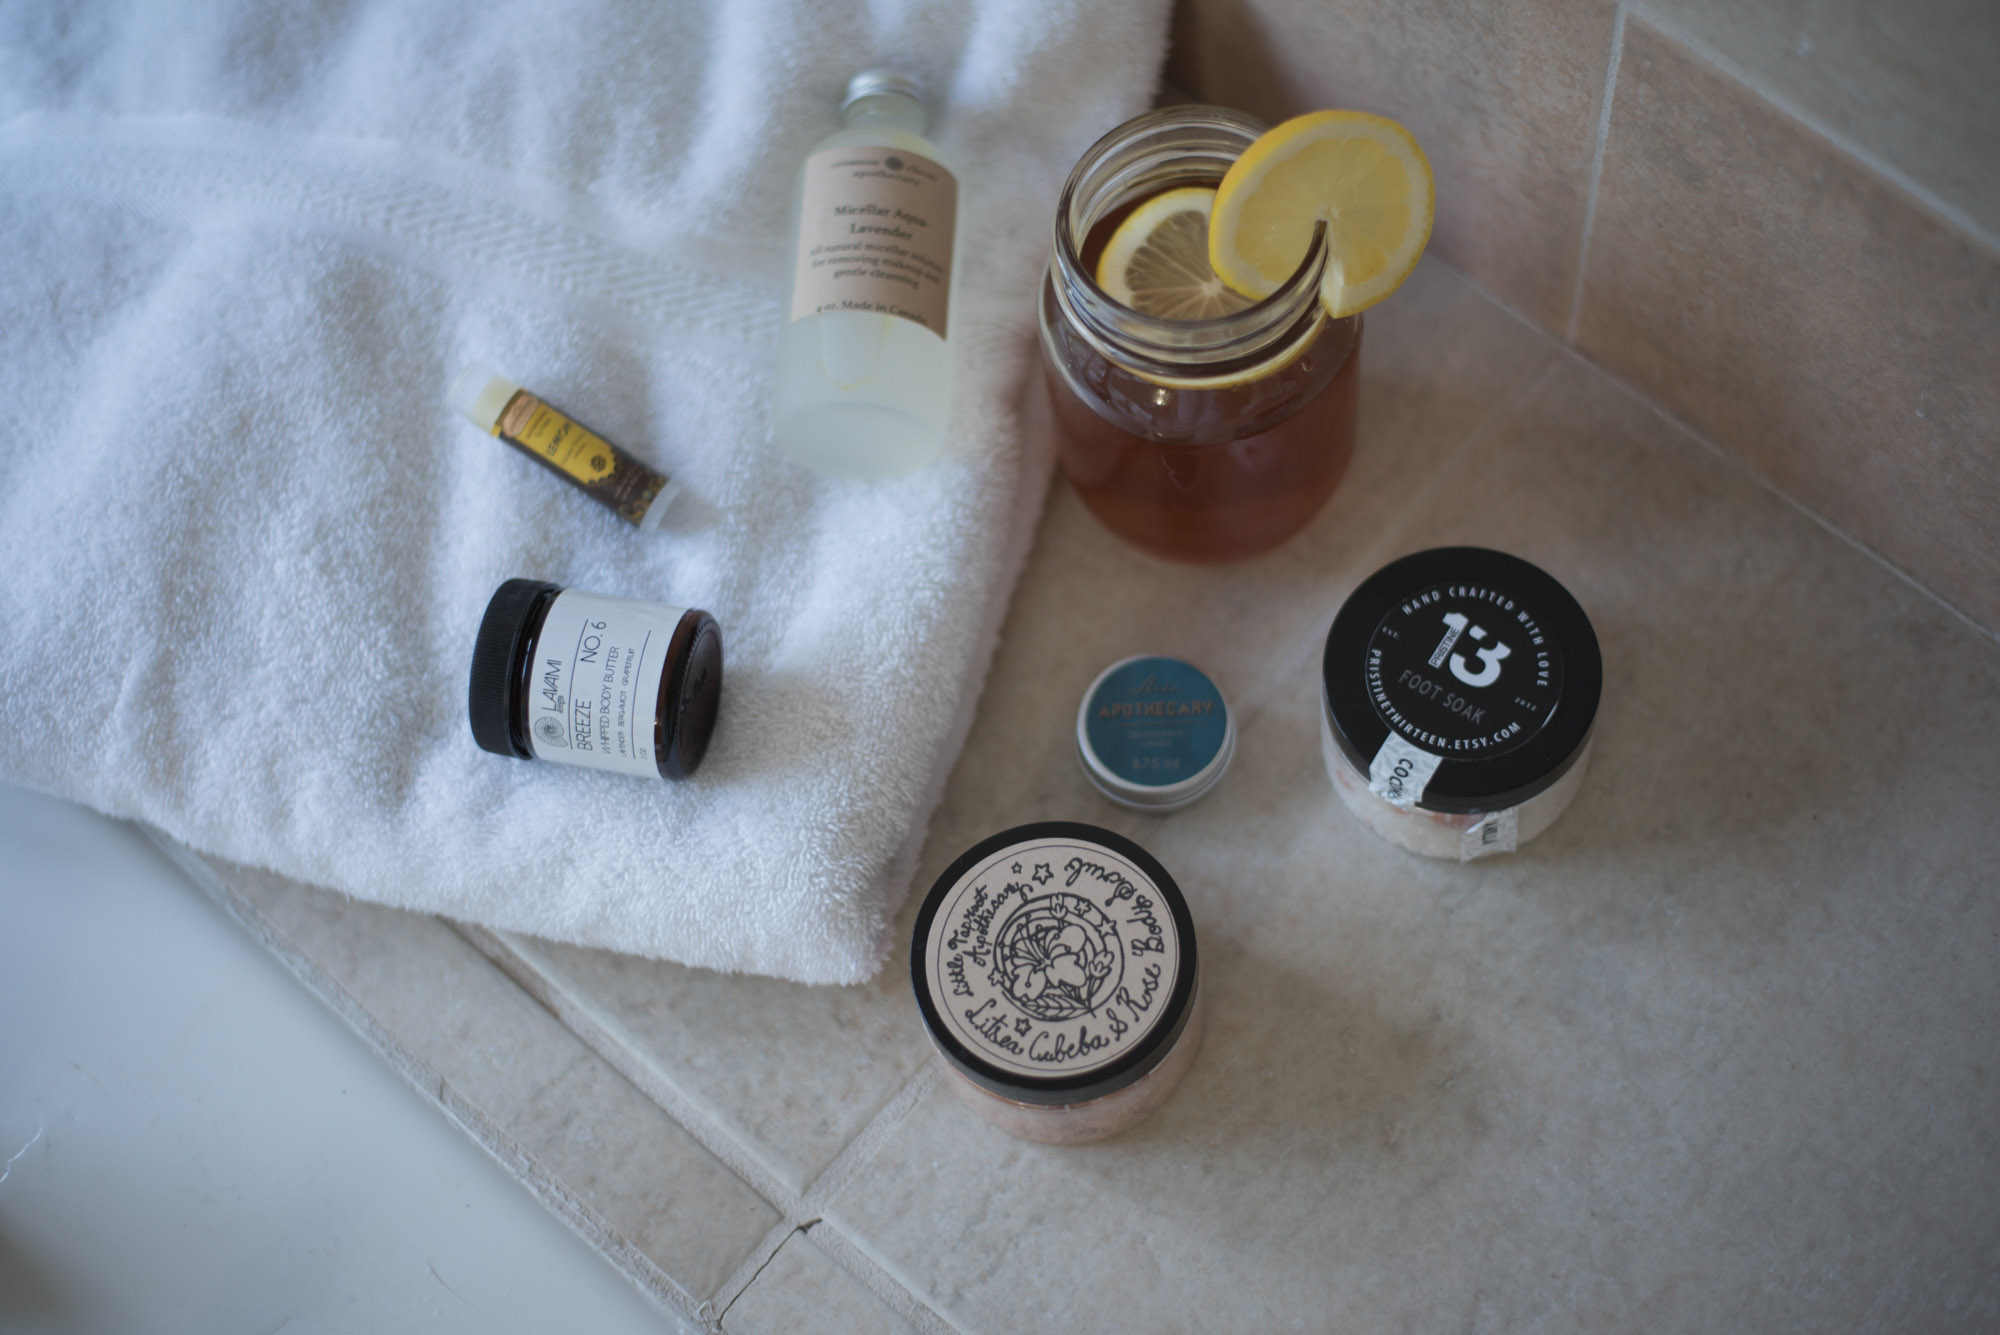 Wild Rosebuds reviews the Oh Mother Care Kit